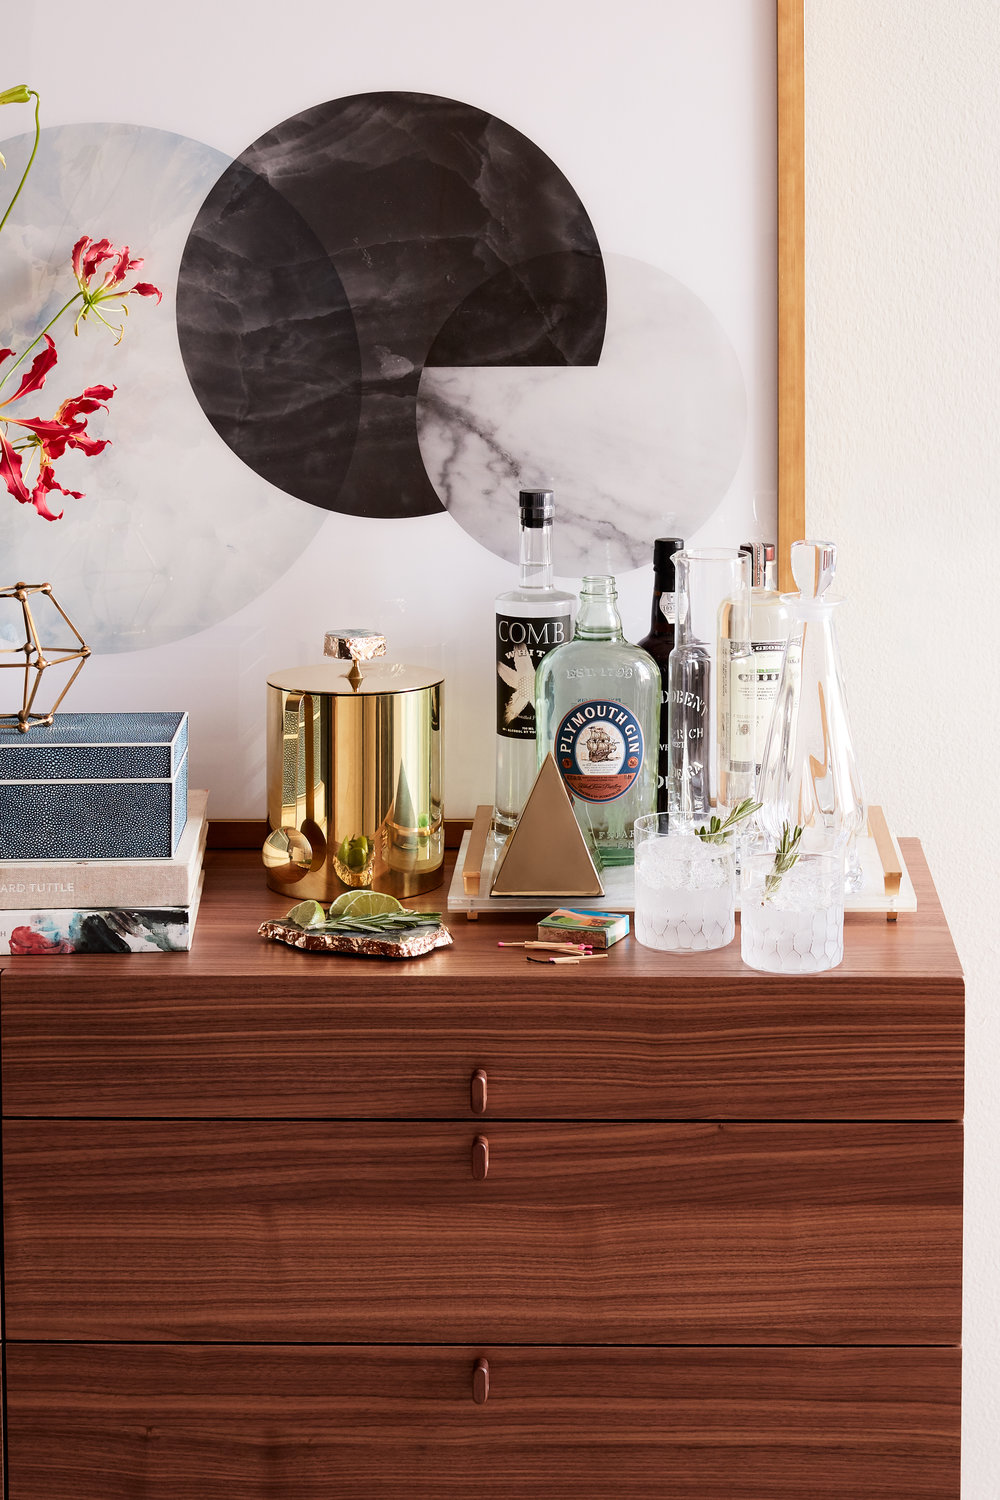 BLOOMINGDALE'S x ELLE DECOR